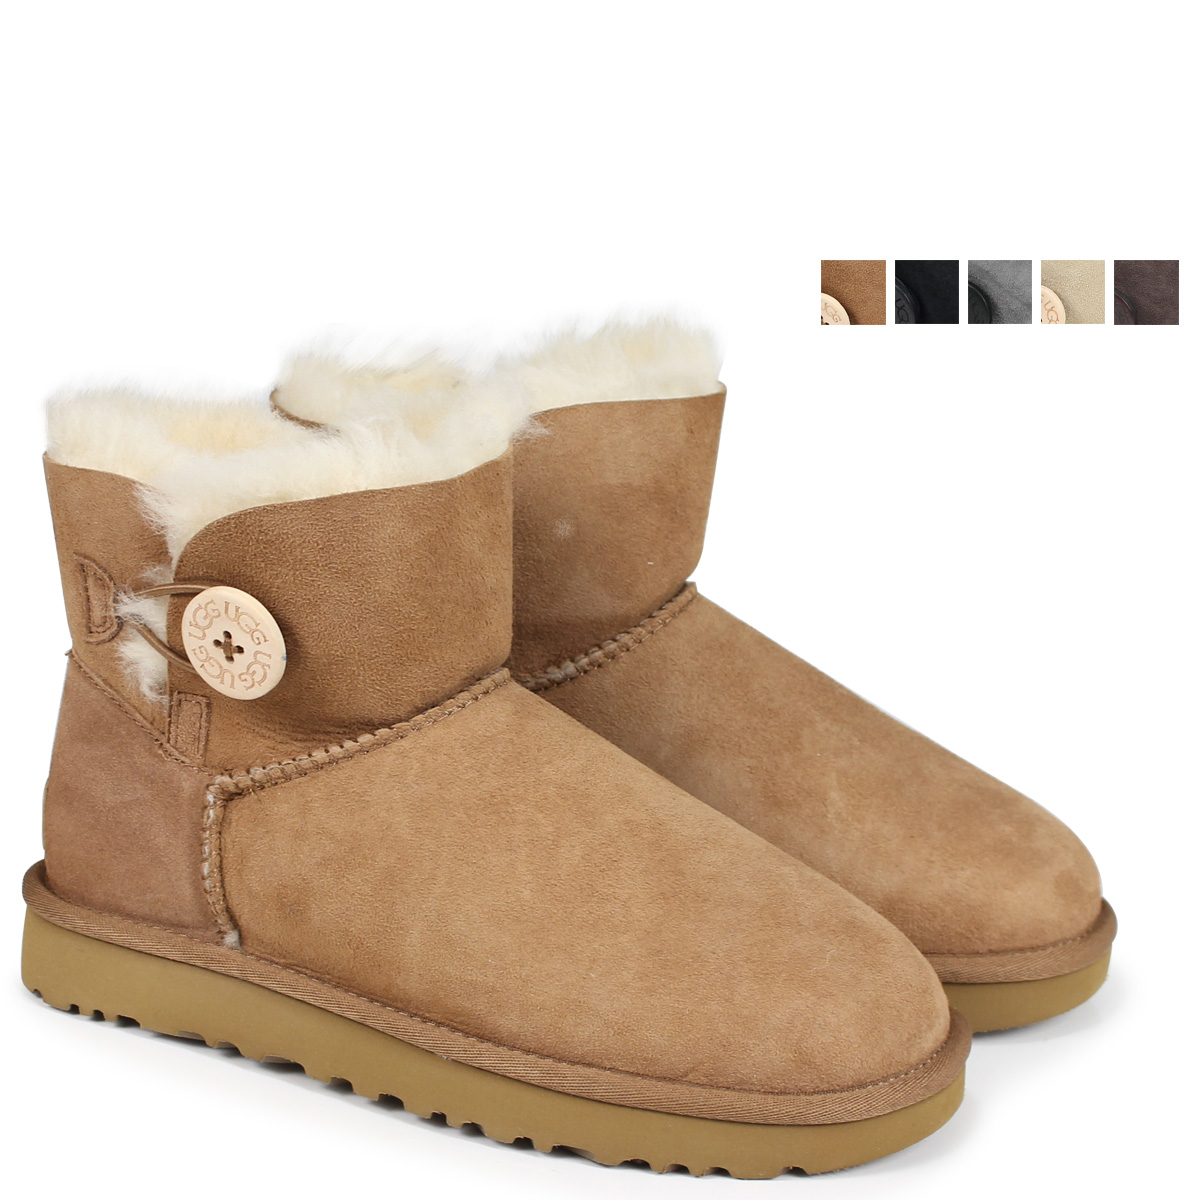 315ced956d2 アグ UGG Lady's WOMENS MINI BAILEY BUTTON II mouton boots mini-Bailey button  2 3352 1016422 [178]